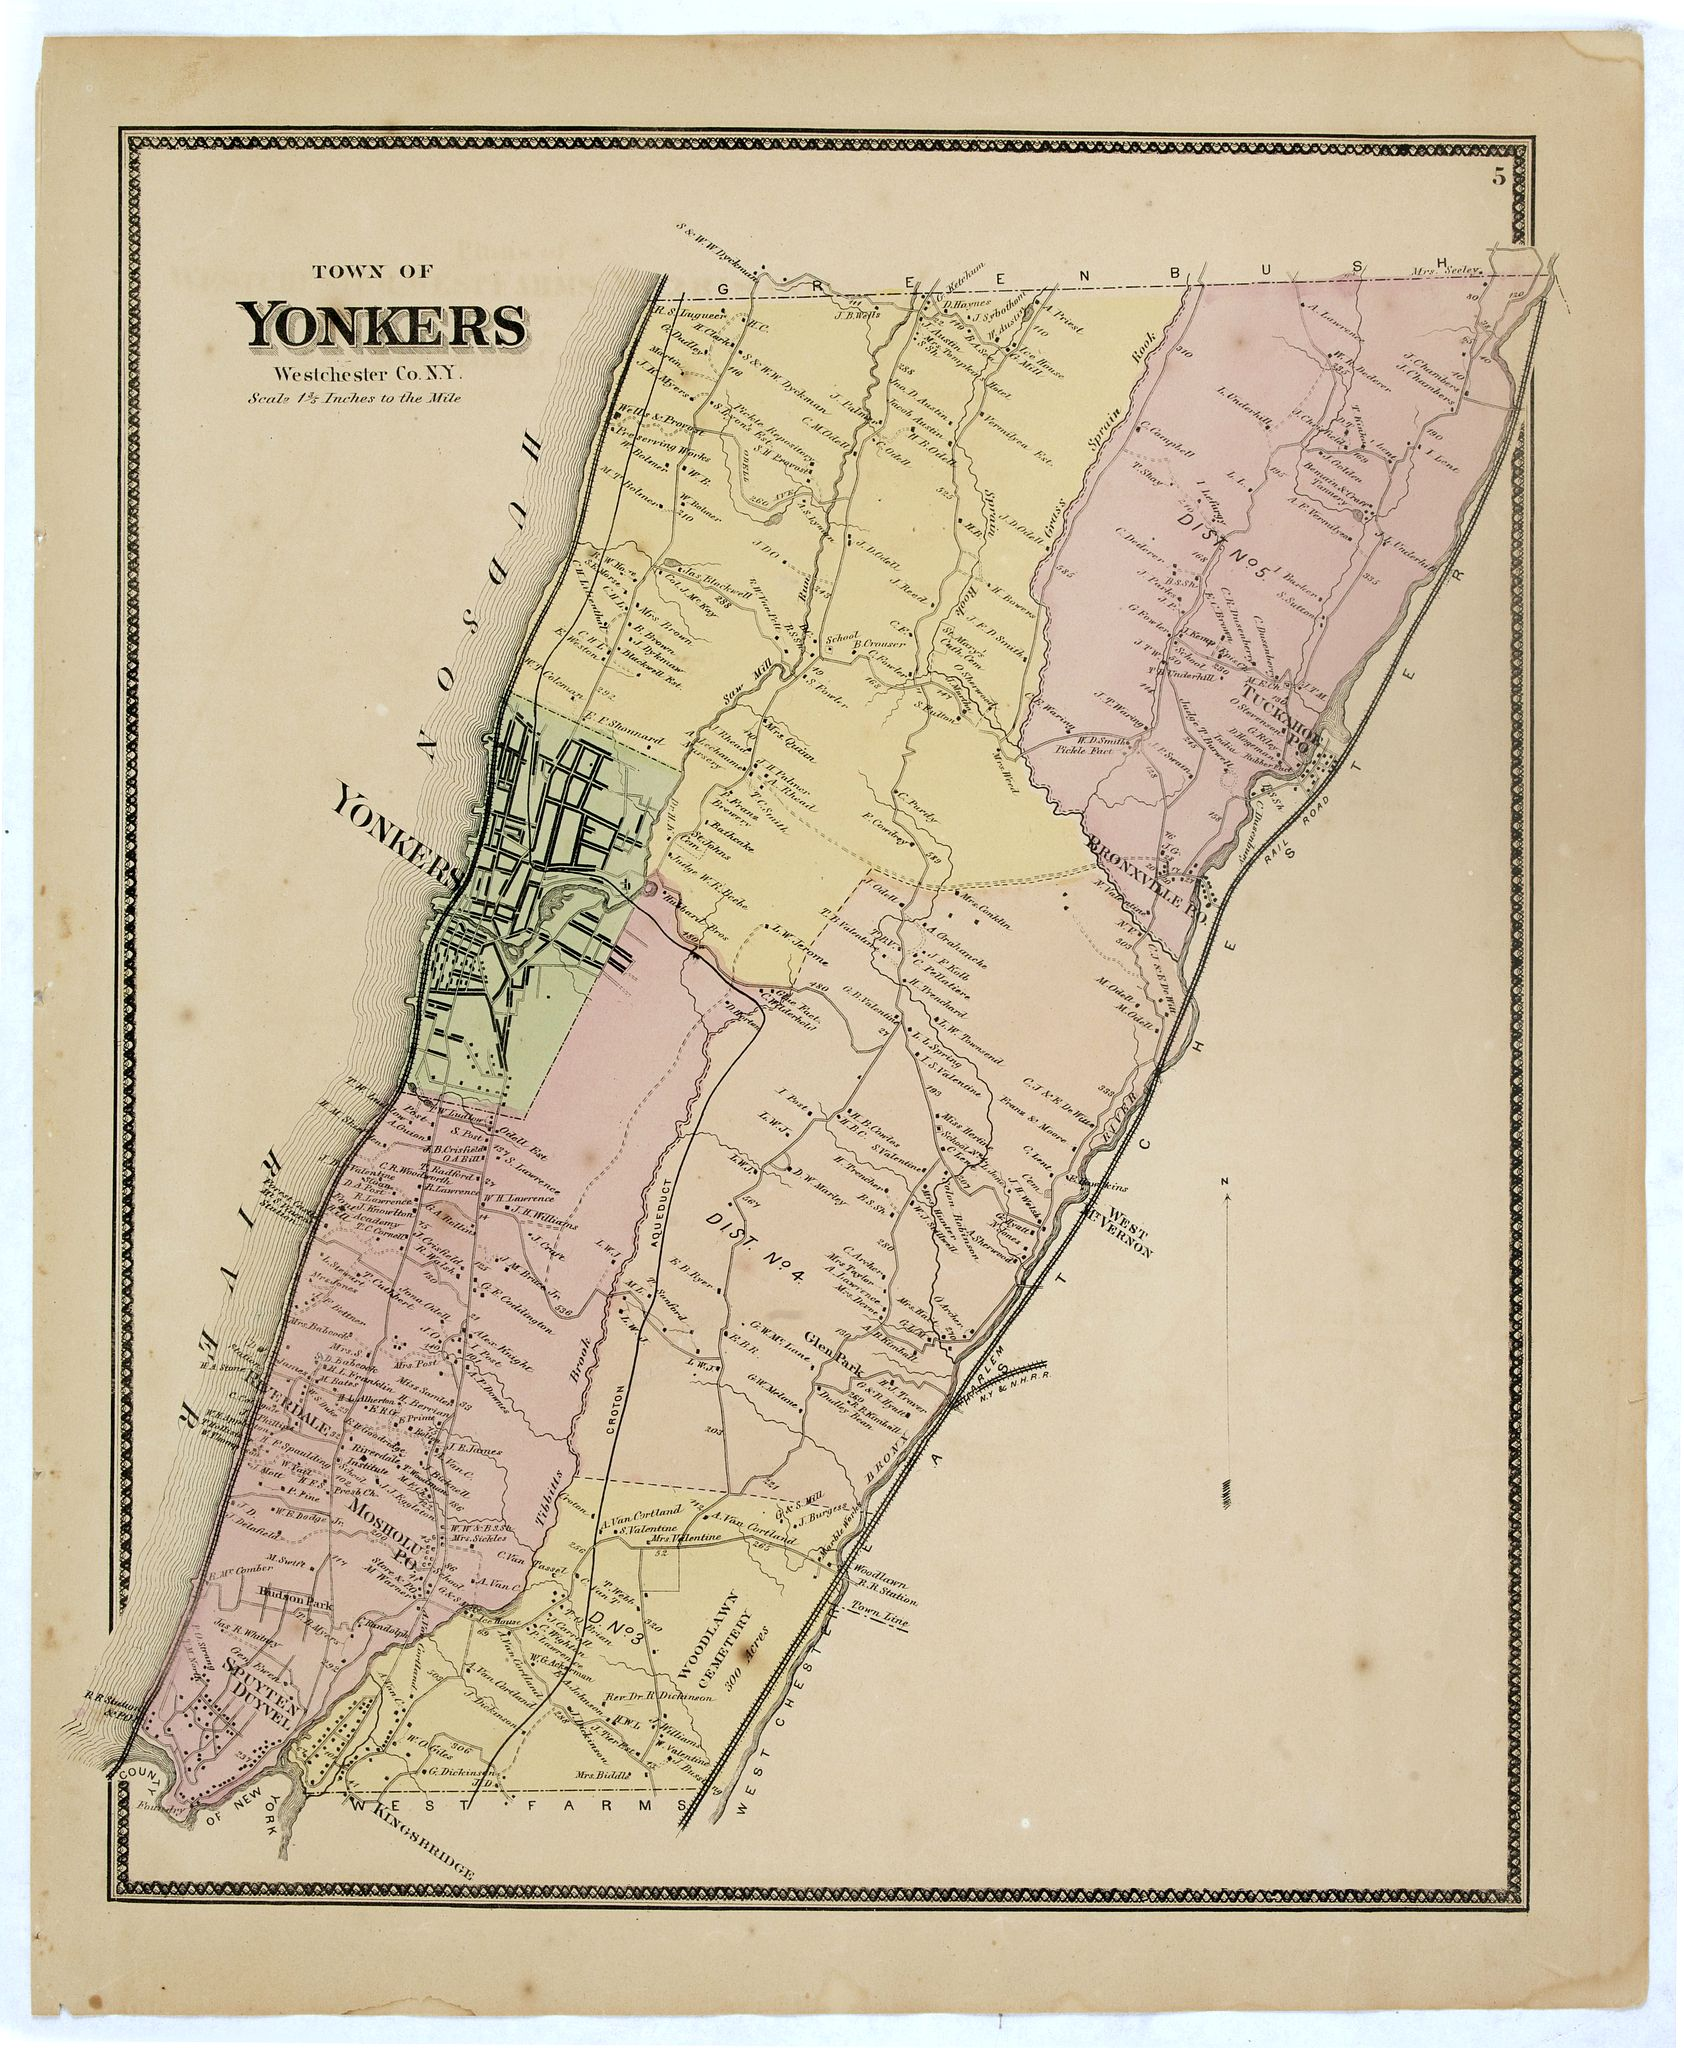 DE BEERS, F.W. -  Town of Yonkers Westchester Co. NY